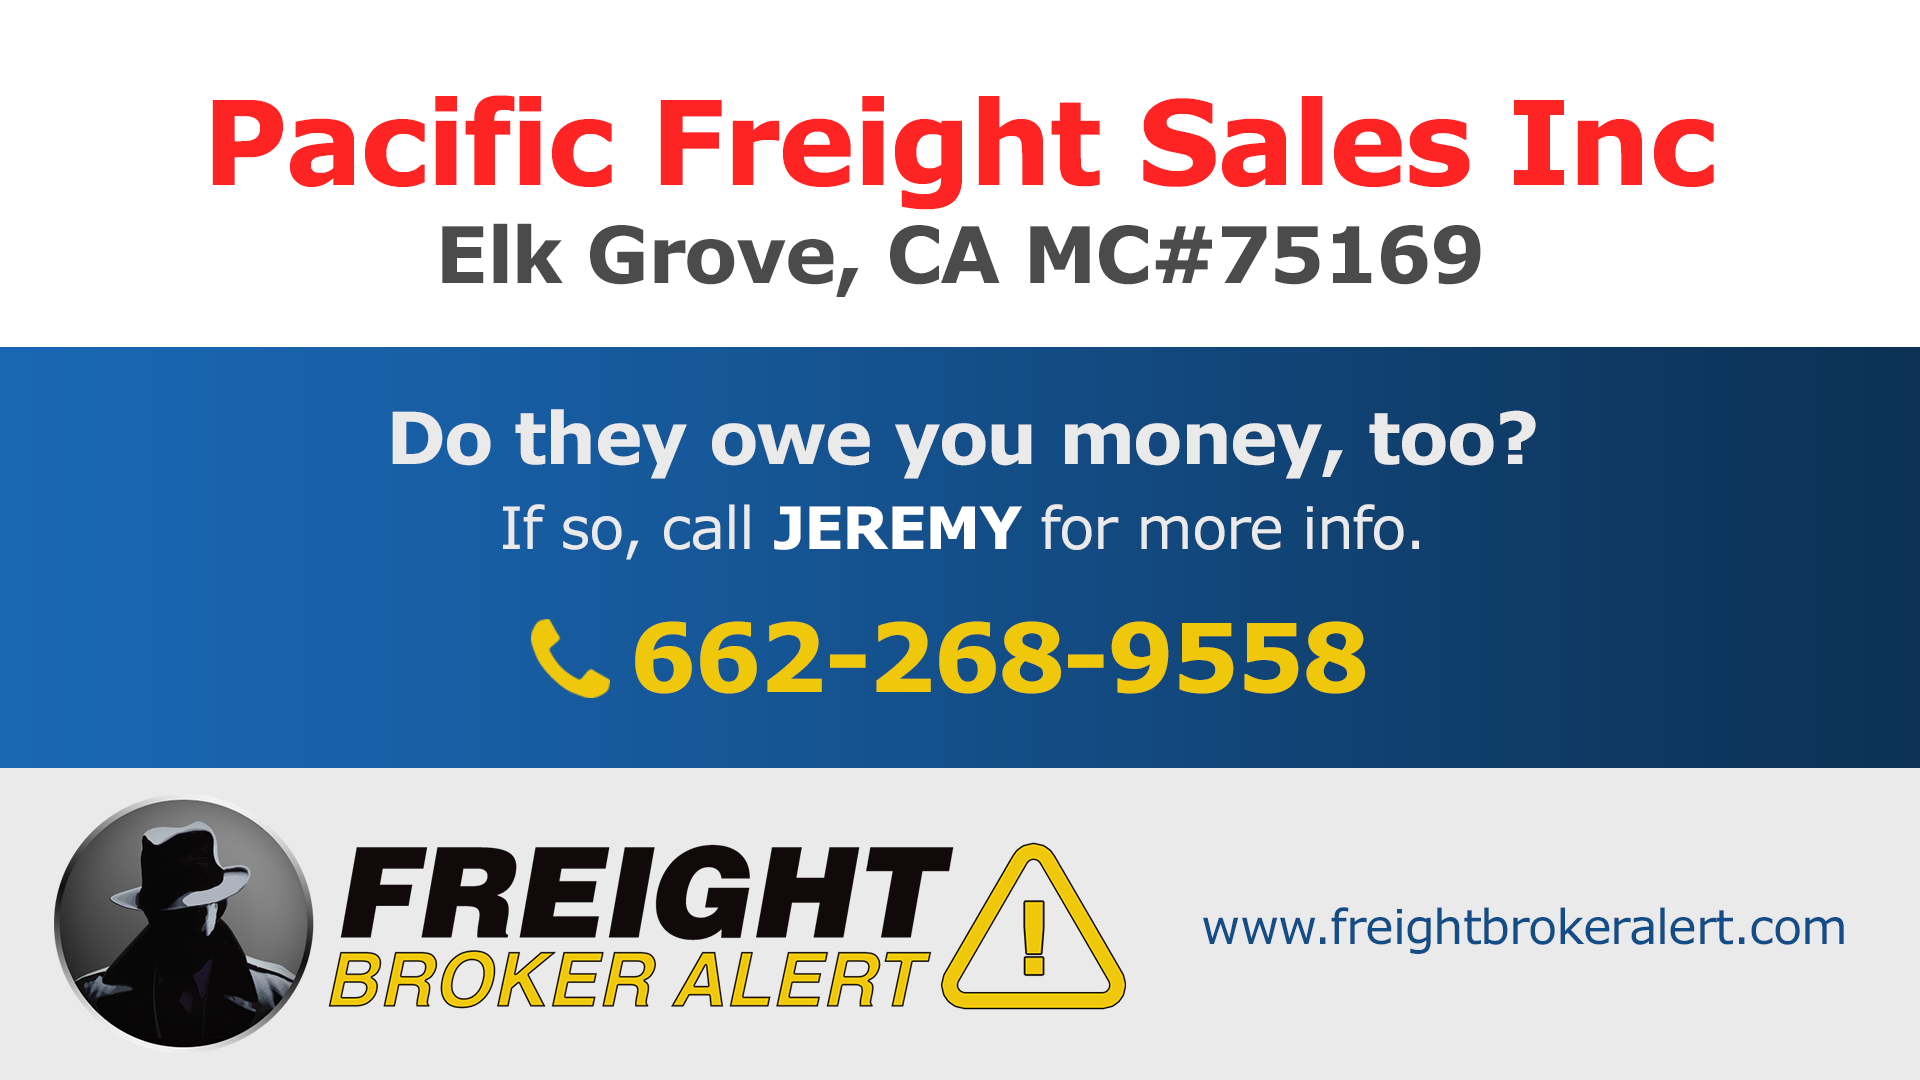 Pacific Freight Sales Inc California